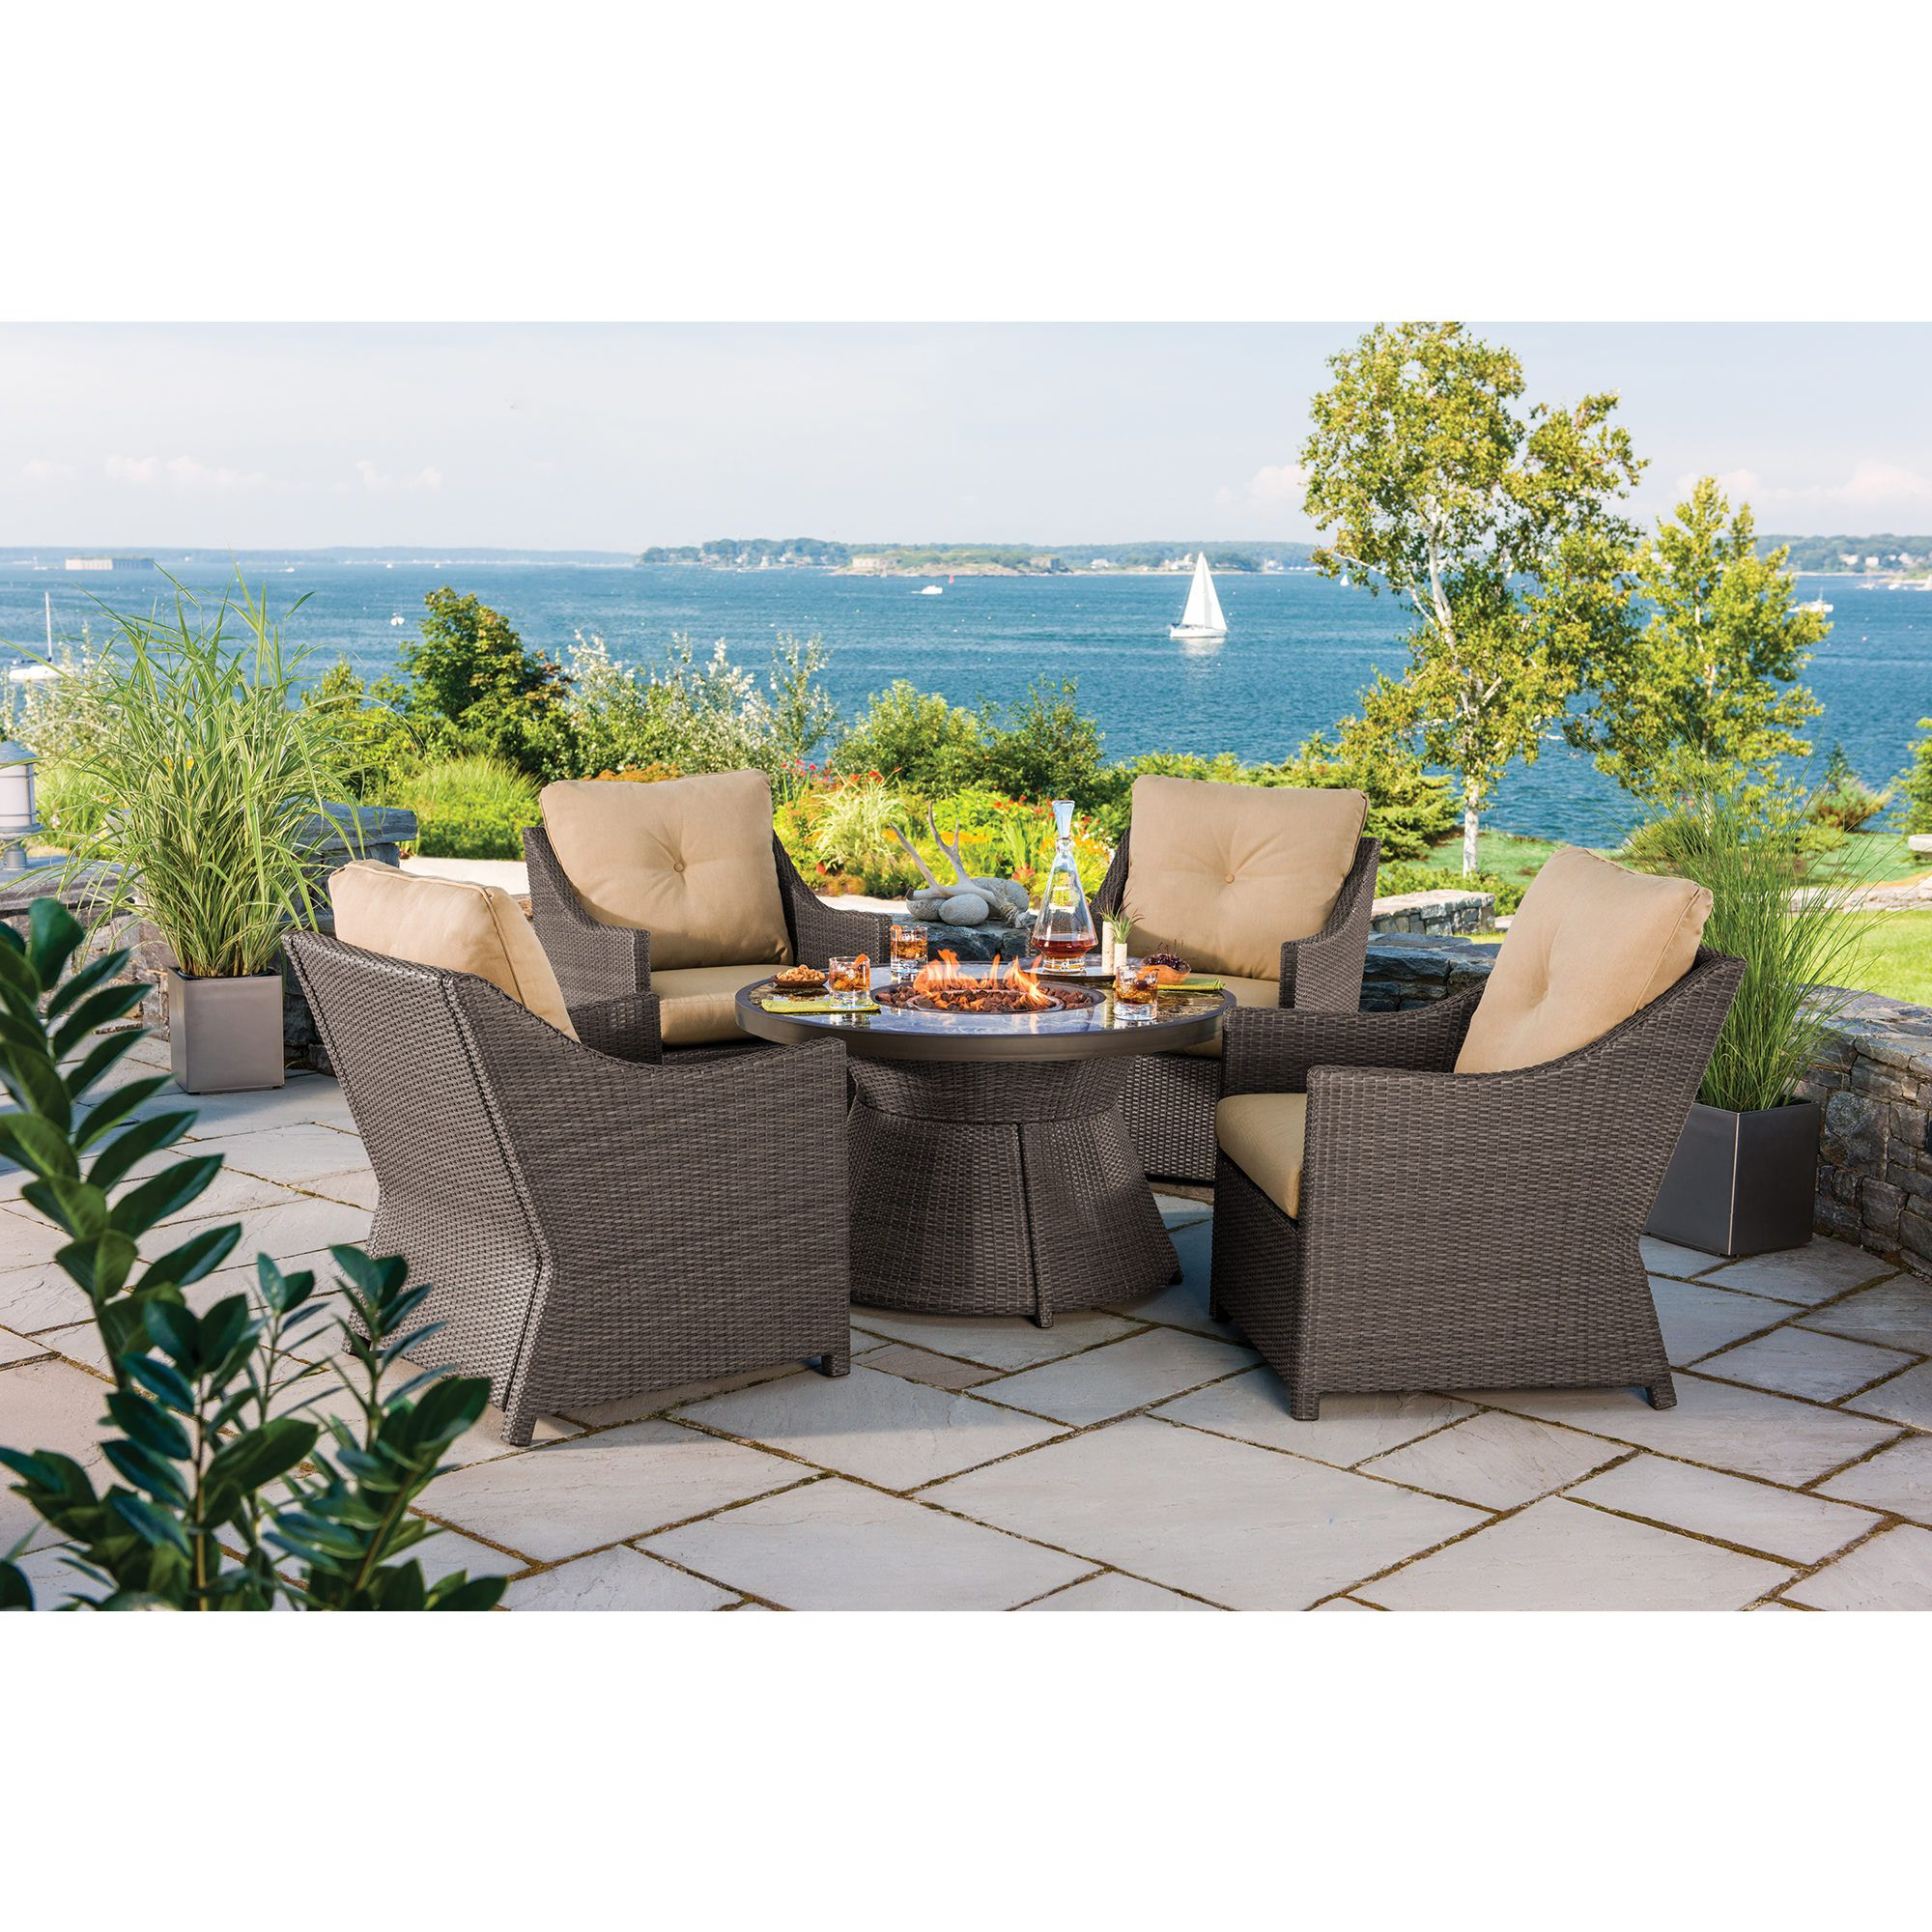 Berkley Jensen Antigua 5 Piece Wicker Fire Pit Chat Set   BJs Wholesale Club